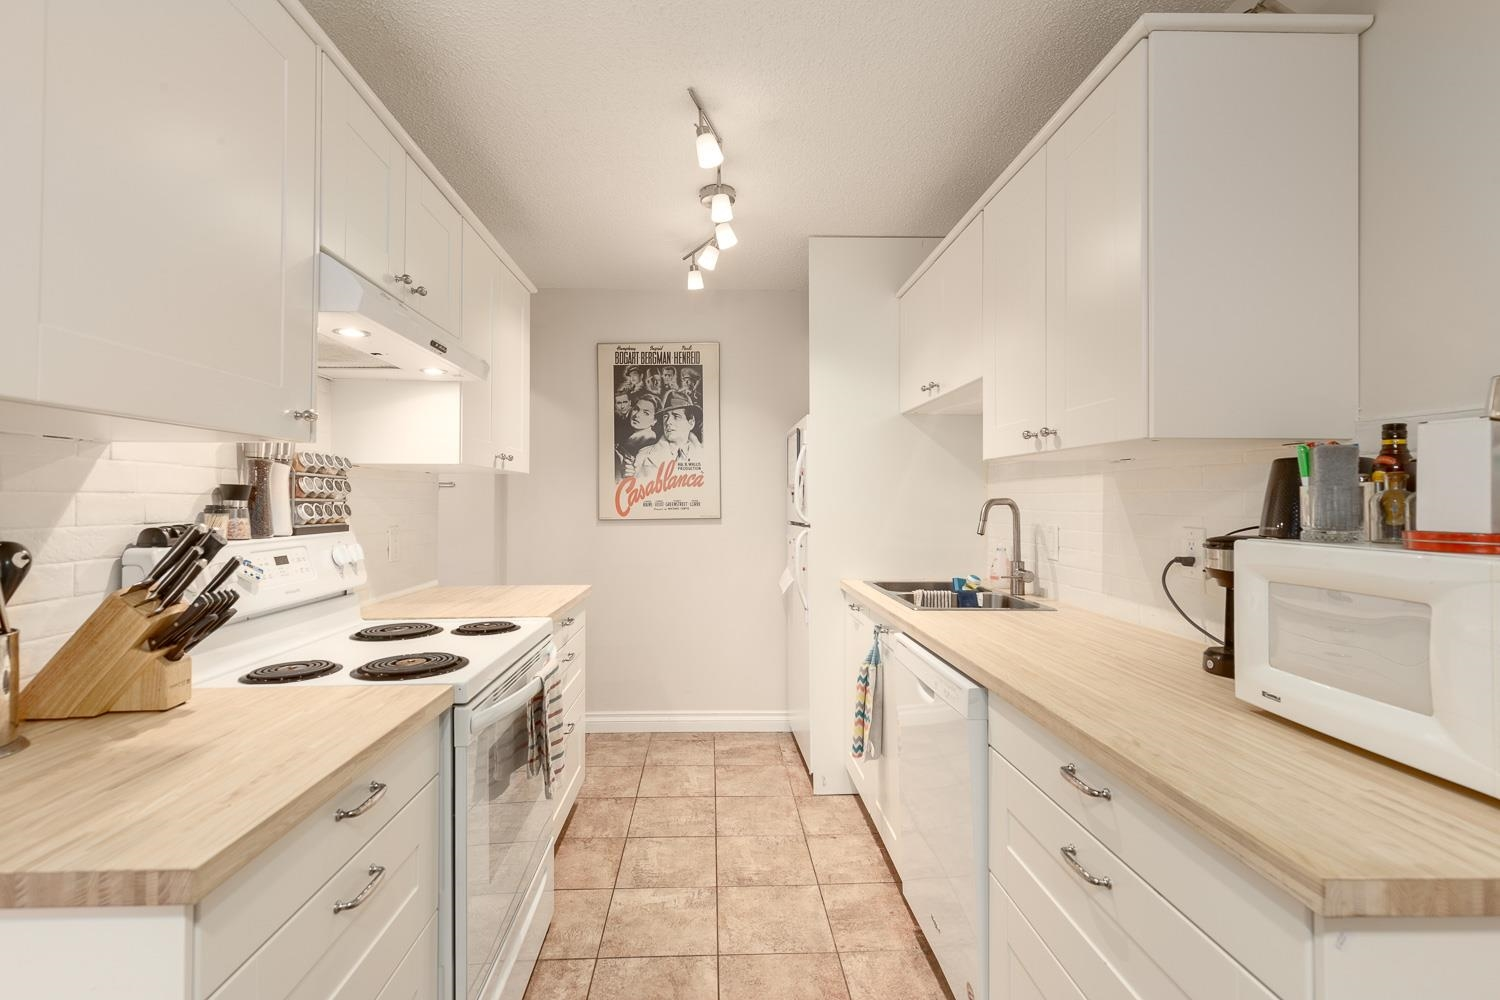 Listing image of 114 211 W 3RD STREET